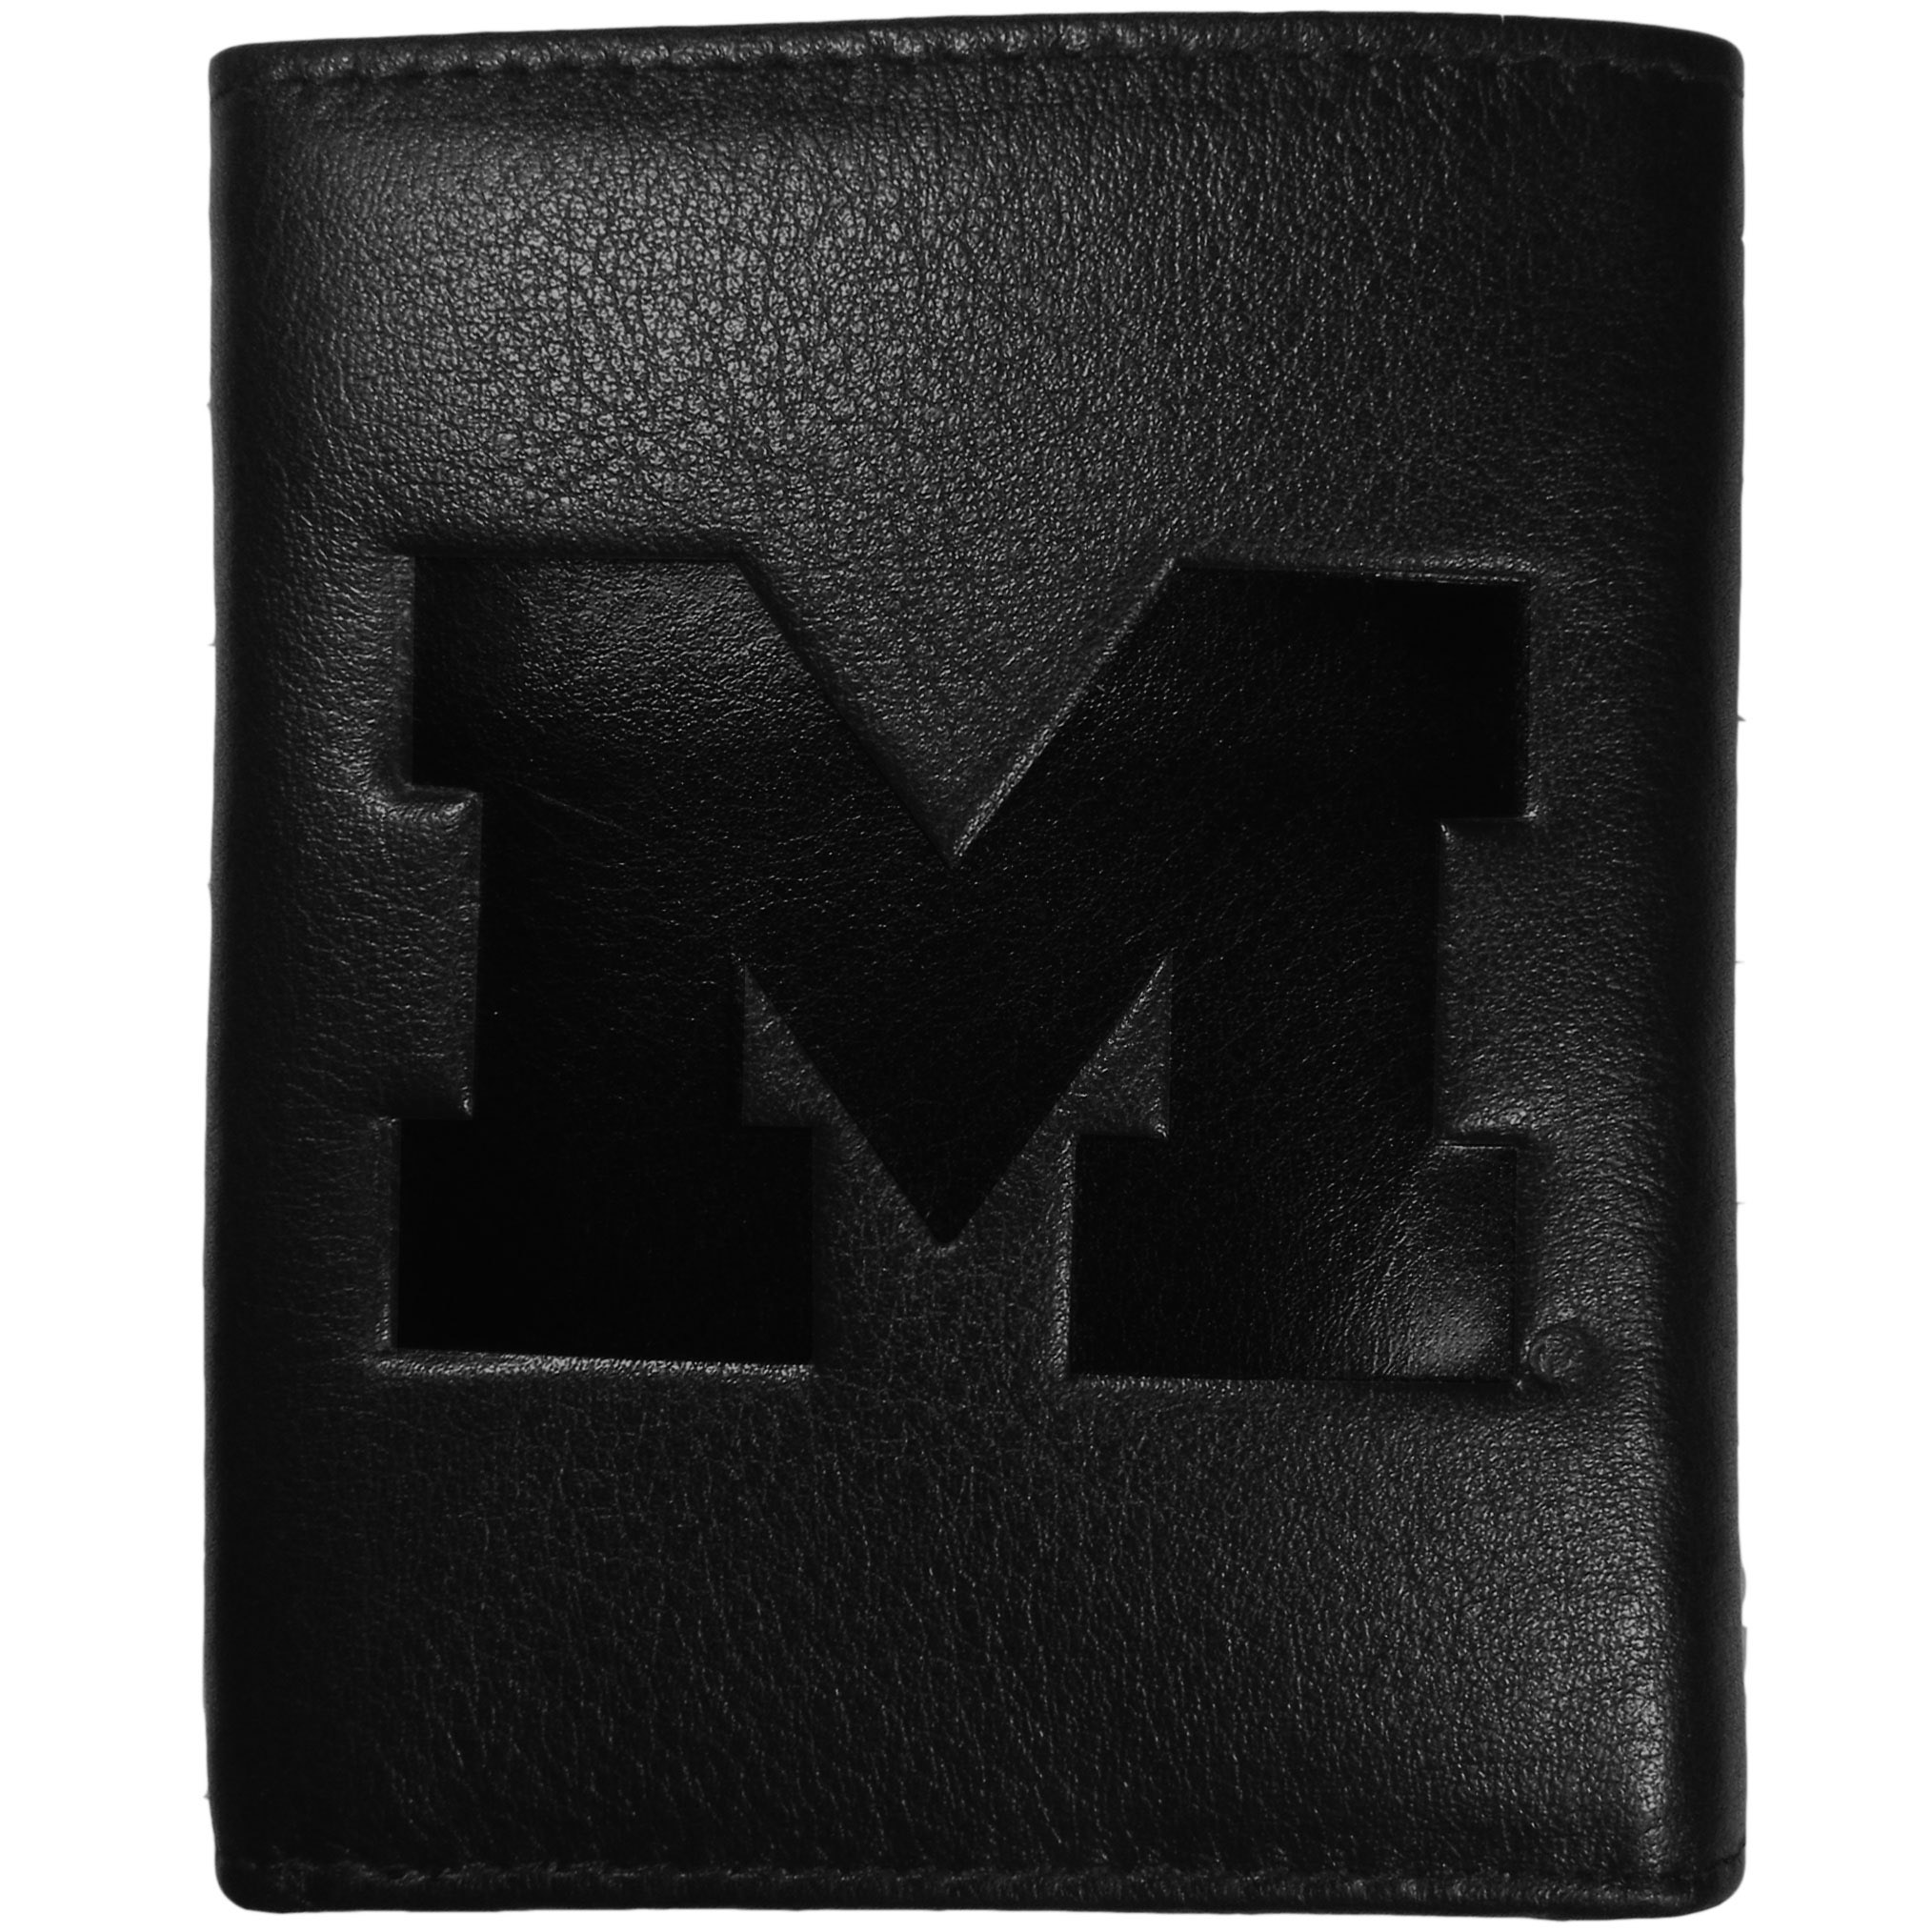 Michigan Wolverines Embossed Leather Tri-fold Wallet - This stylish leather wallet is made of high quality leather with a supple feel and classic look. The front of the tri-fold style wallet has a deeply embossed Michigan Wolverines logo. The billfold is packed with features that will allow to keep organized, lots of credit card slots, windowed ID slot, large pockets for bills and a removable sleeve with extra slots for even more storage. This is a must-have men's fashion accessory that would make any fan very proud to own.